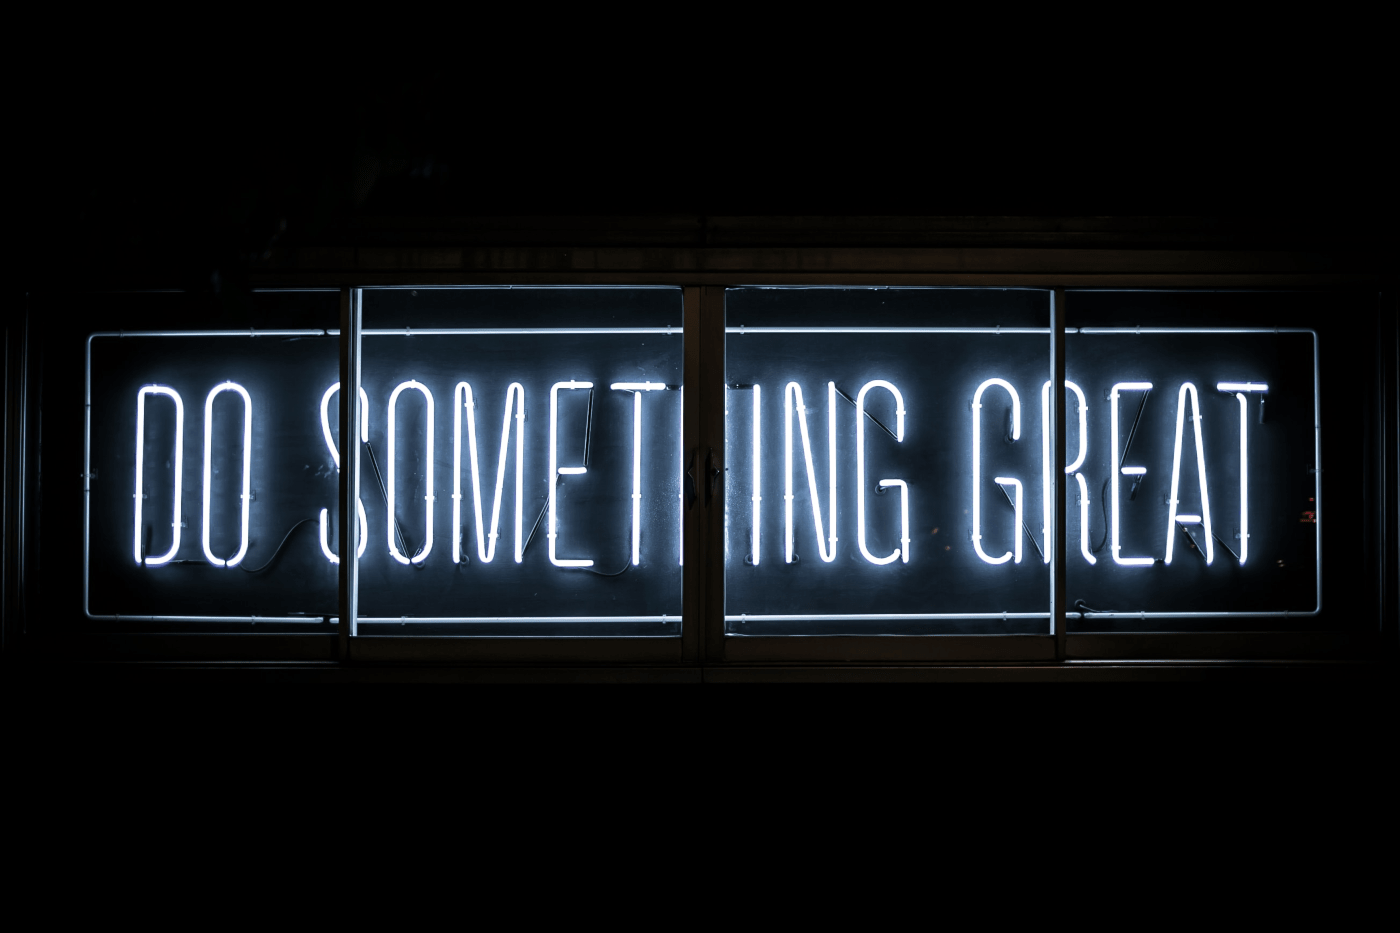 """""""DO SOMETHING GREAT"""" neon sign in black background 